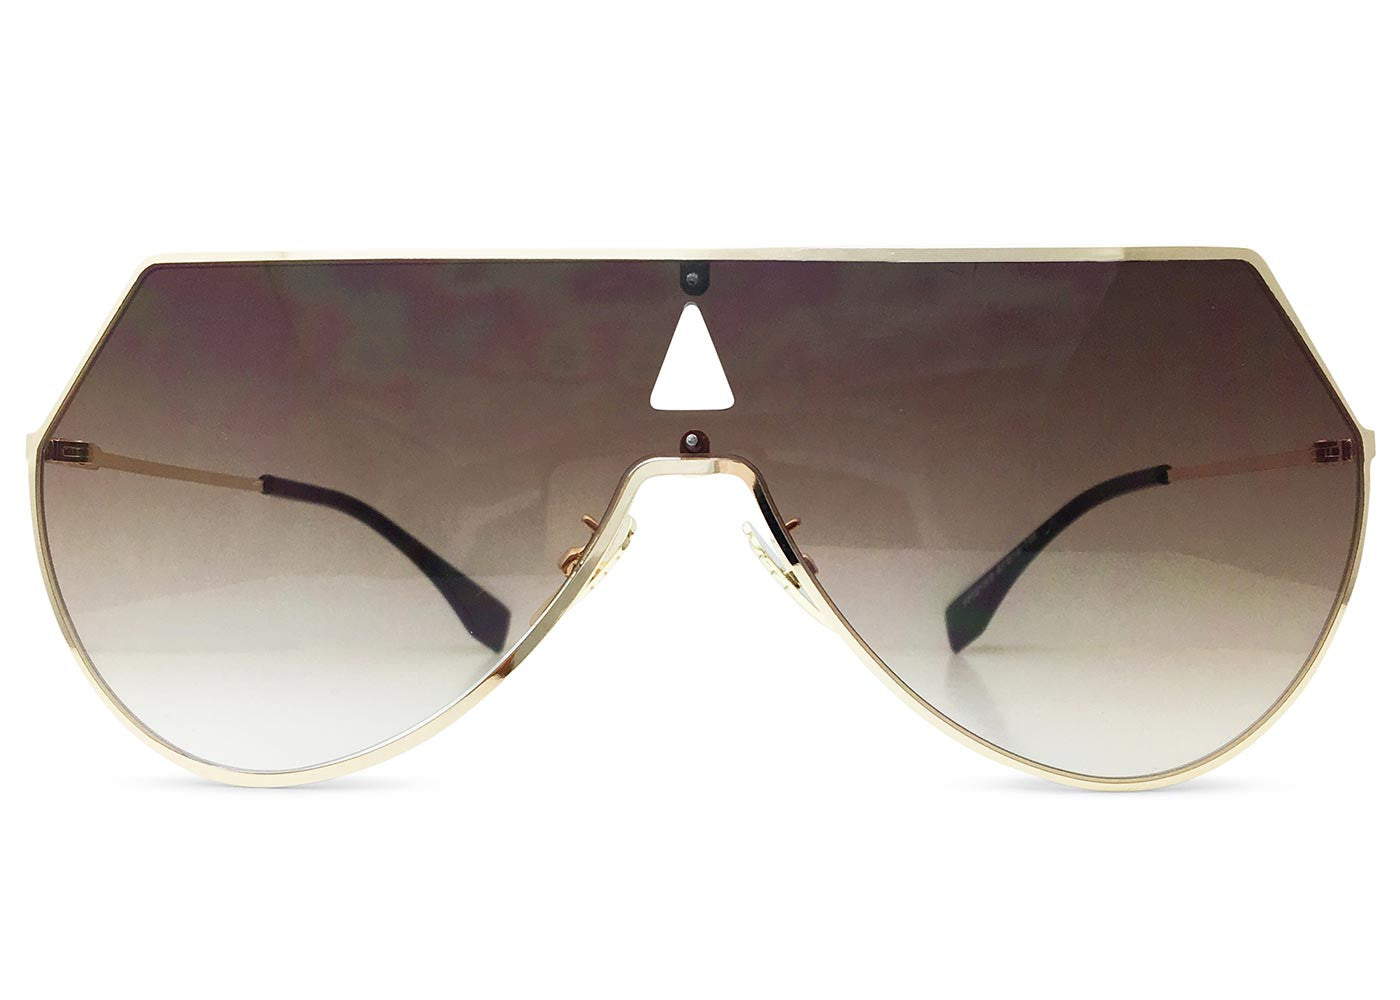 Flatliner Aviators in Brown Gradient